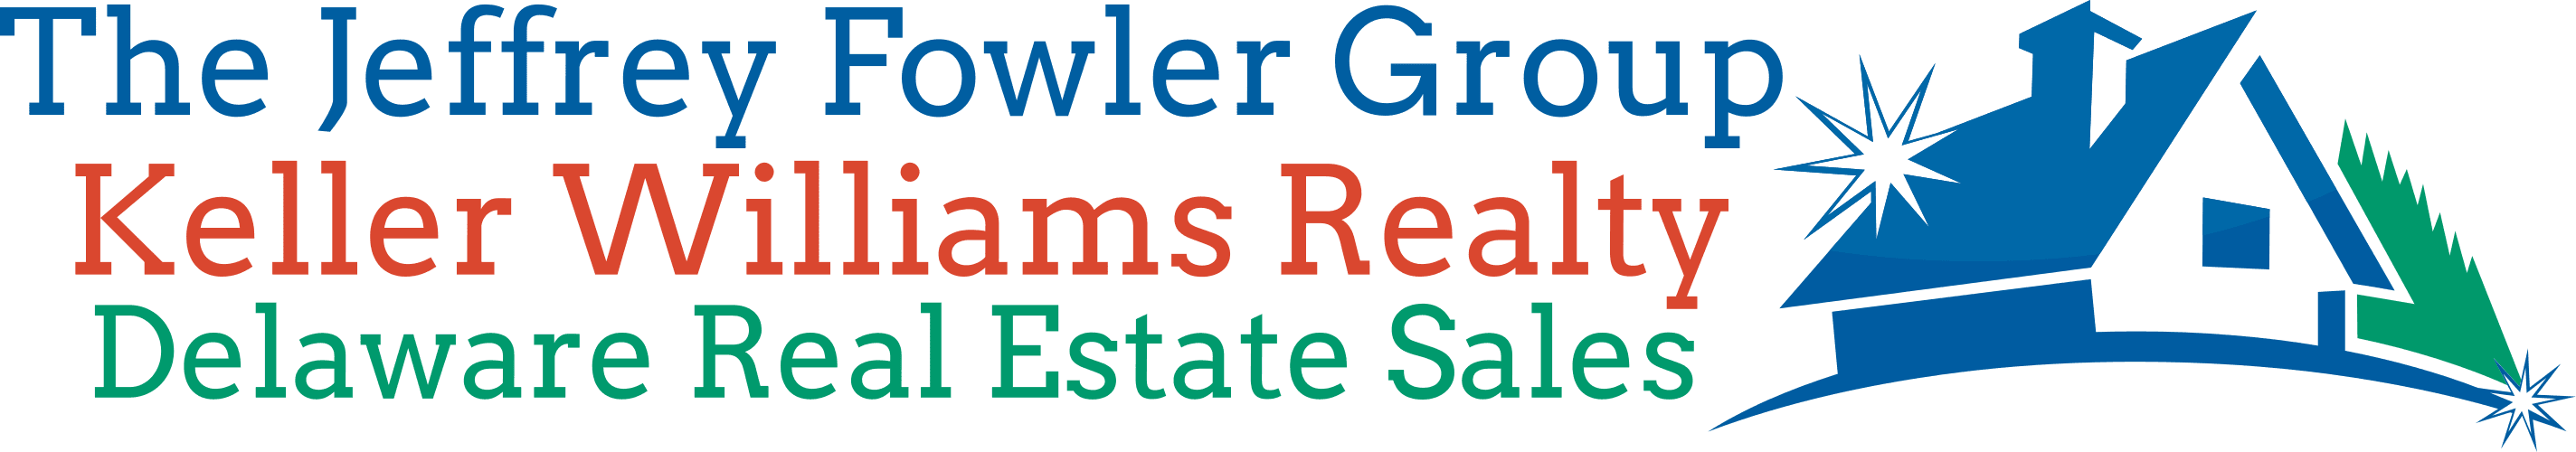 Delaware Beach Real Estate Sales New Homes Condos Townhomes Lots Land Acreage Farms Commercial For Sale Keller Williams Realty